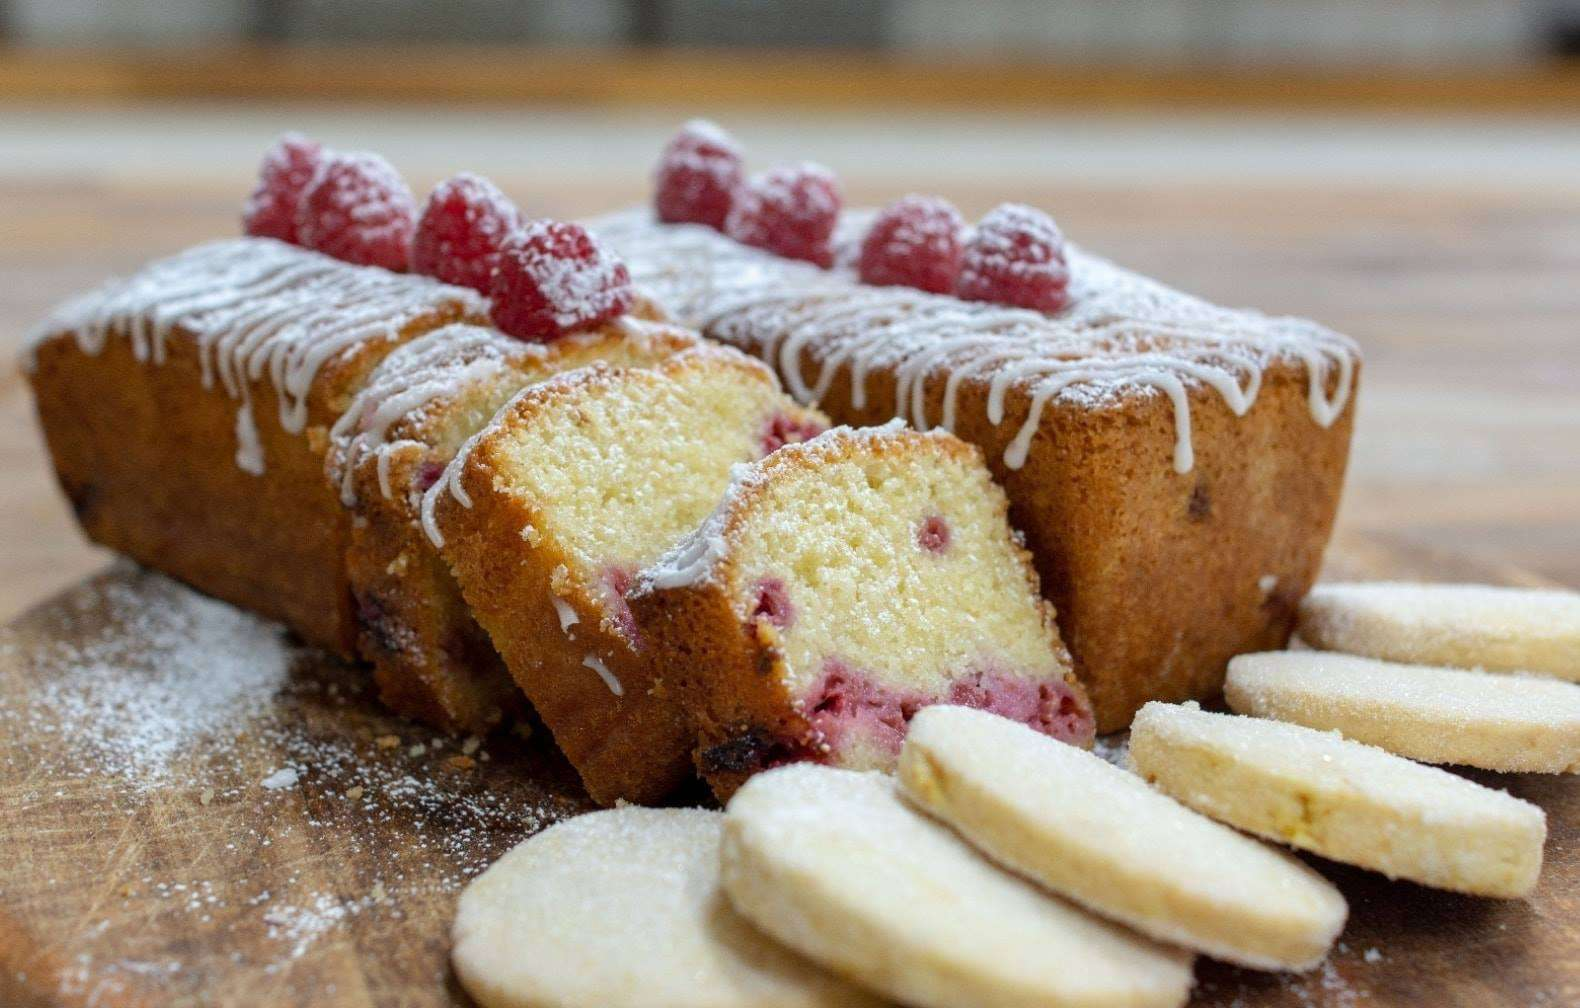 Two loaves of cranberry pound cake on a cutting board with six sugar cookies. One loaf has three slices cut from it